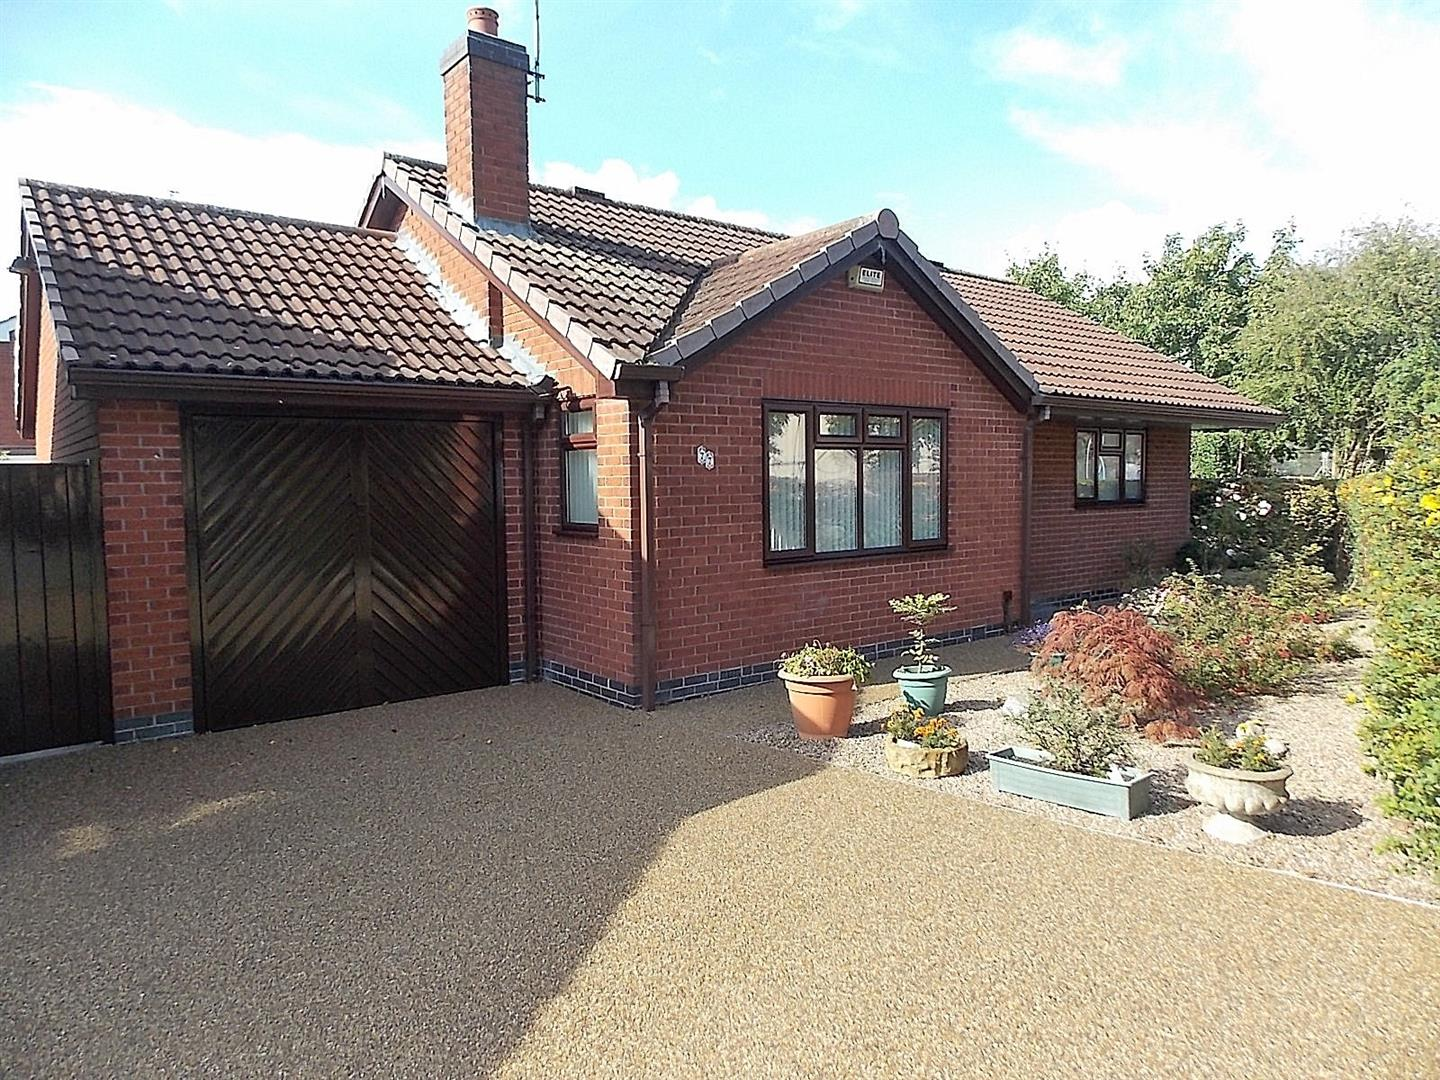 2 Bedrooms Detached Bungalow for sale in Chetwynd Road, Toton